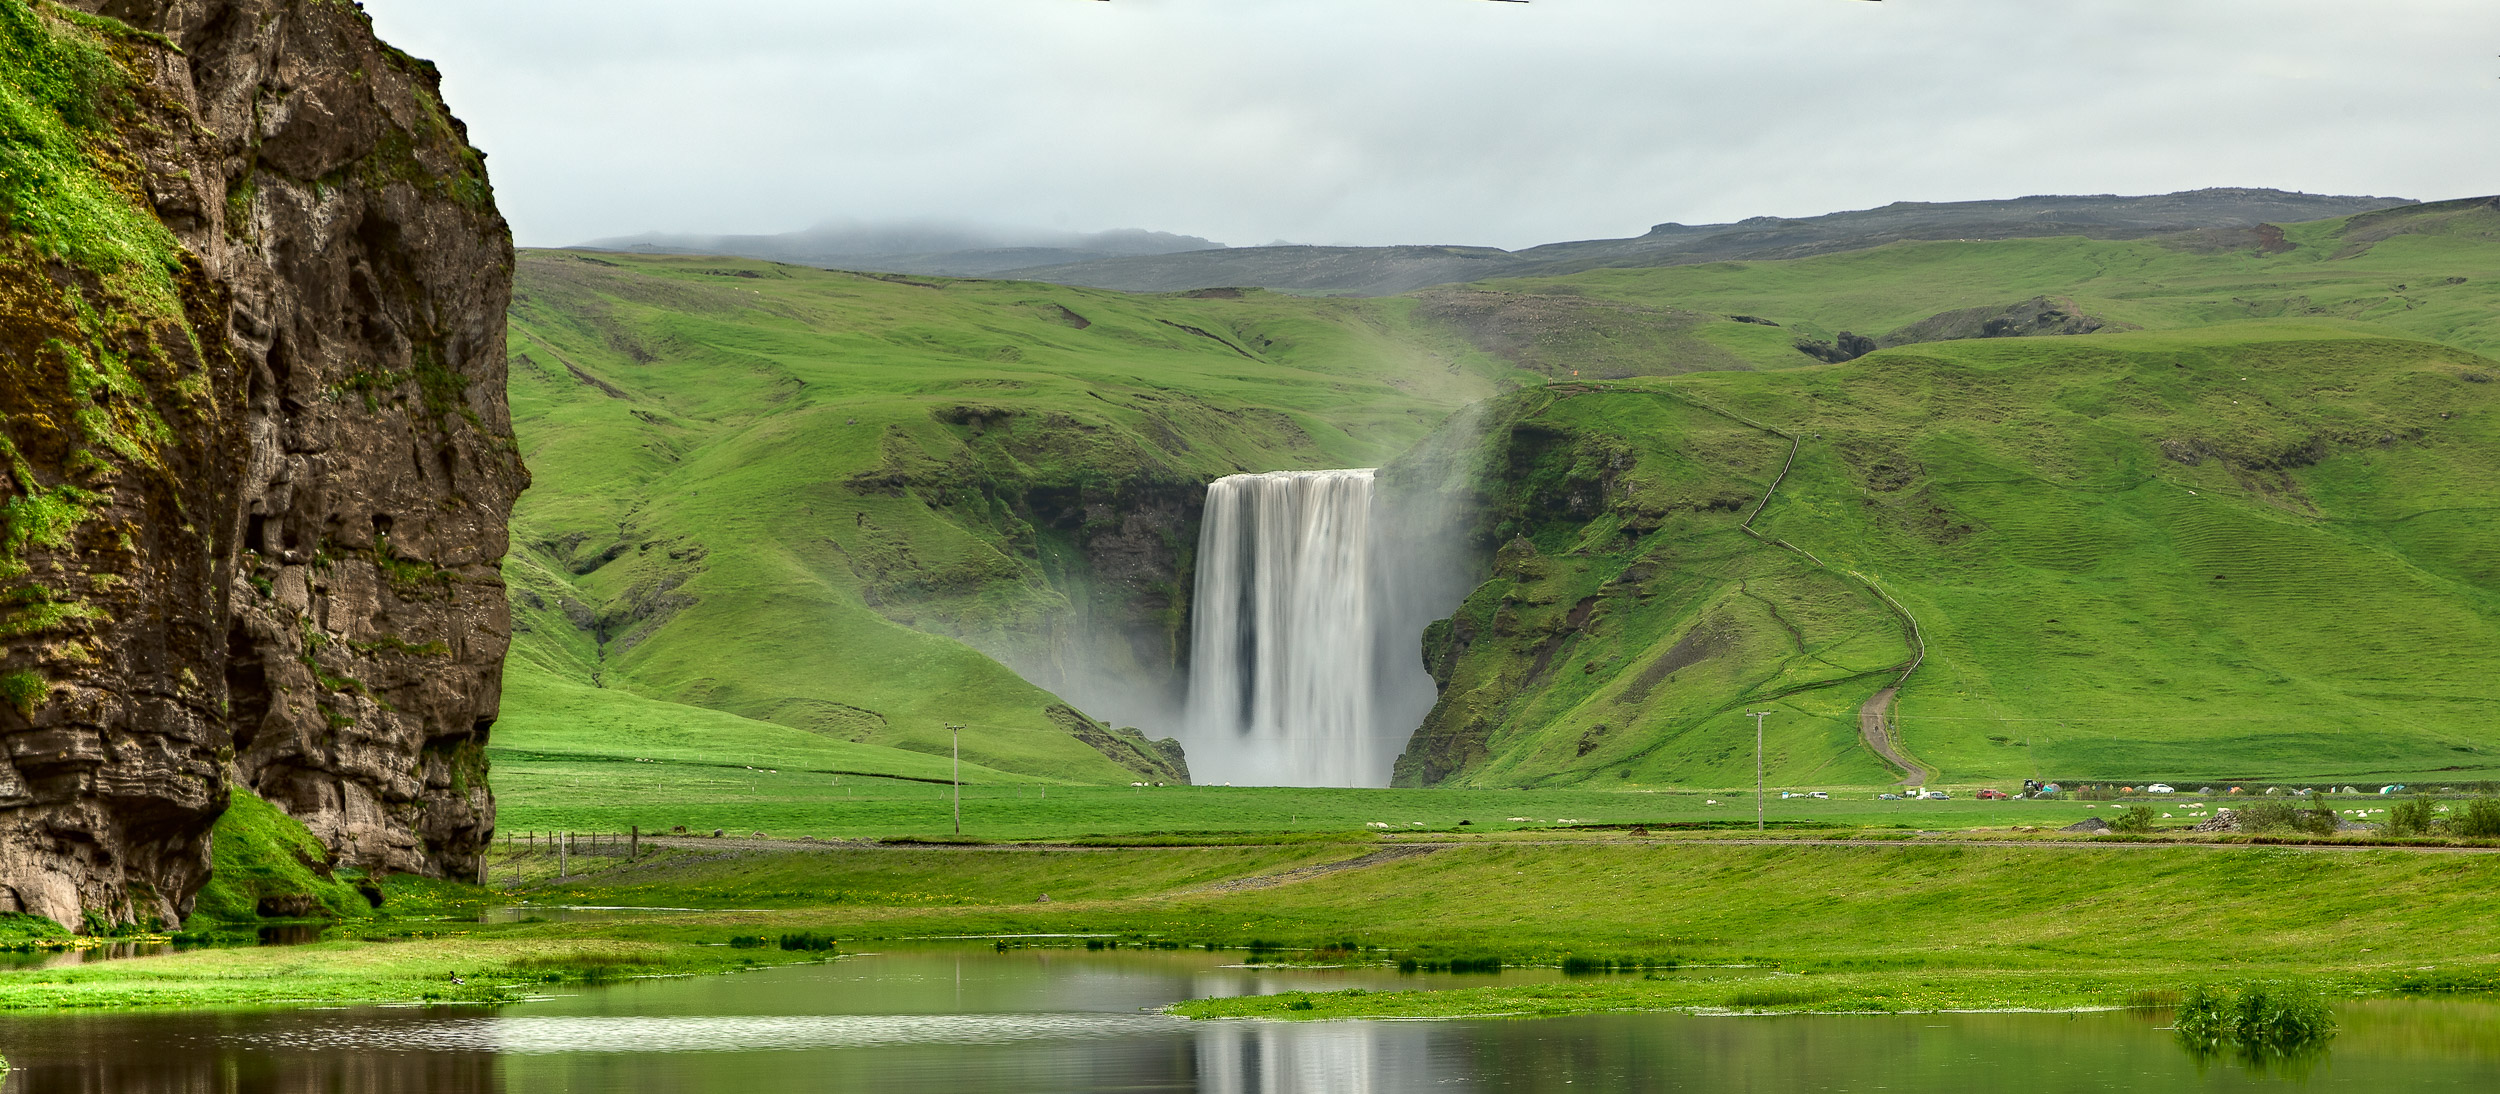 The powerful  Skógafoss Waterfall  depicted within the larger lush green landscape of  southern Iceland .